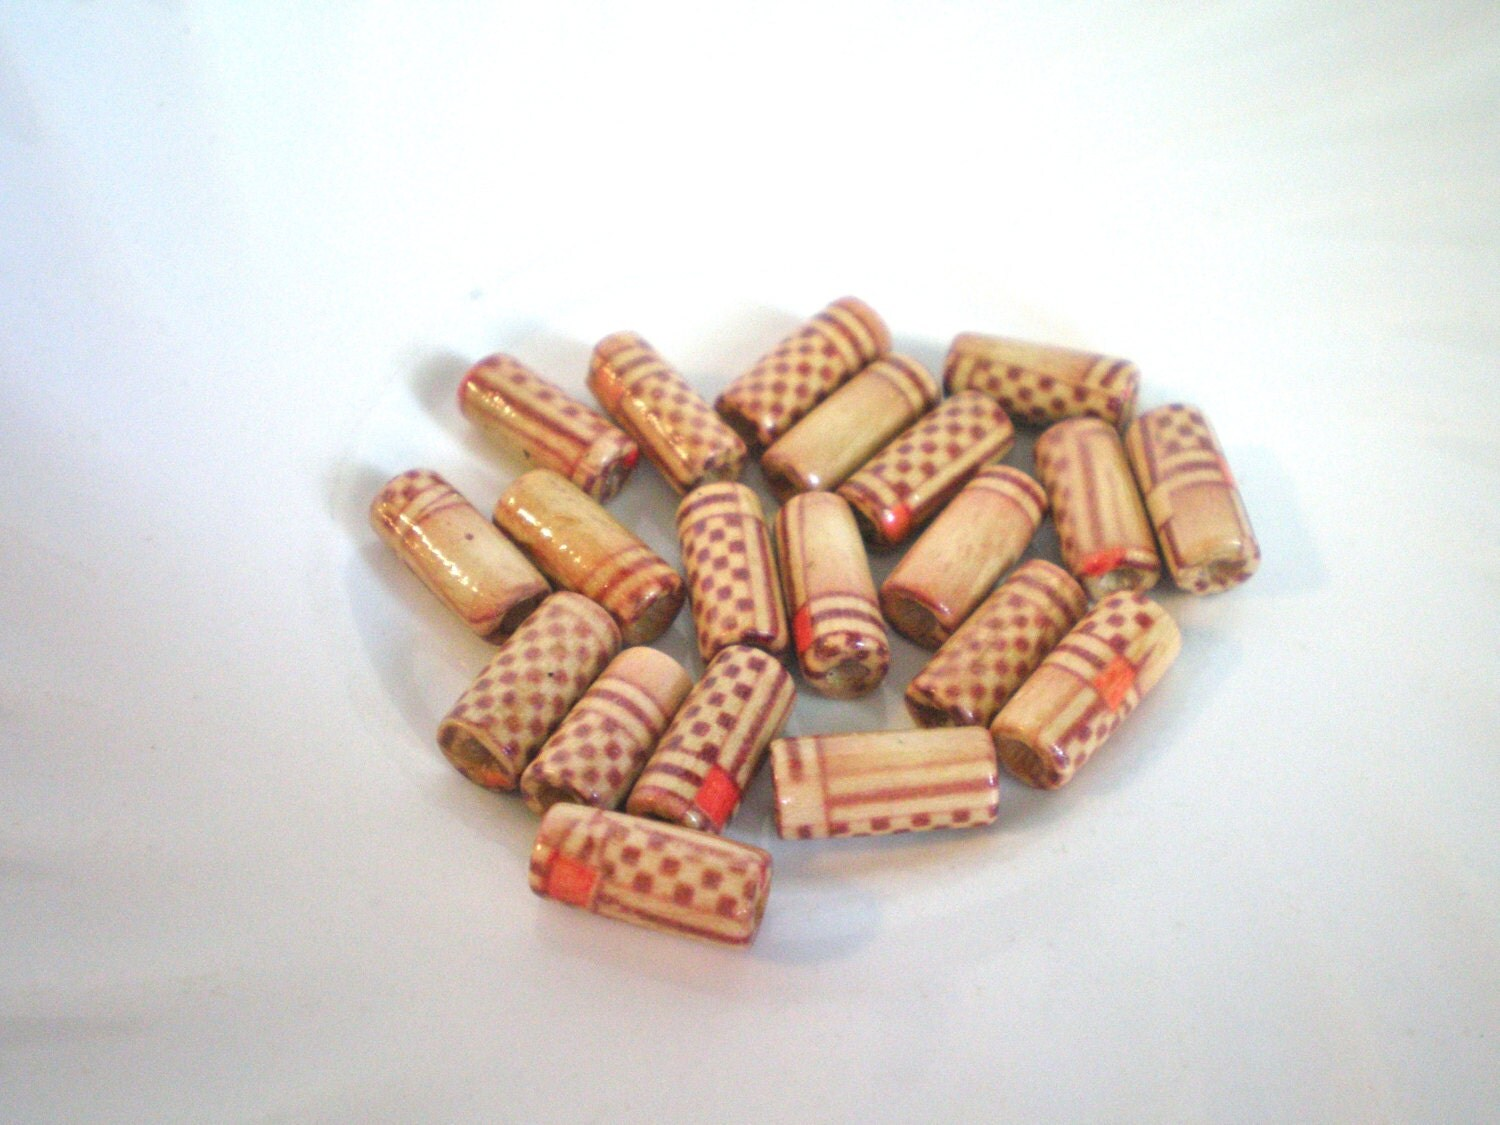 20 wooden tube beads jewelry supplies craft supplies for Craft and jewelry supplies